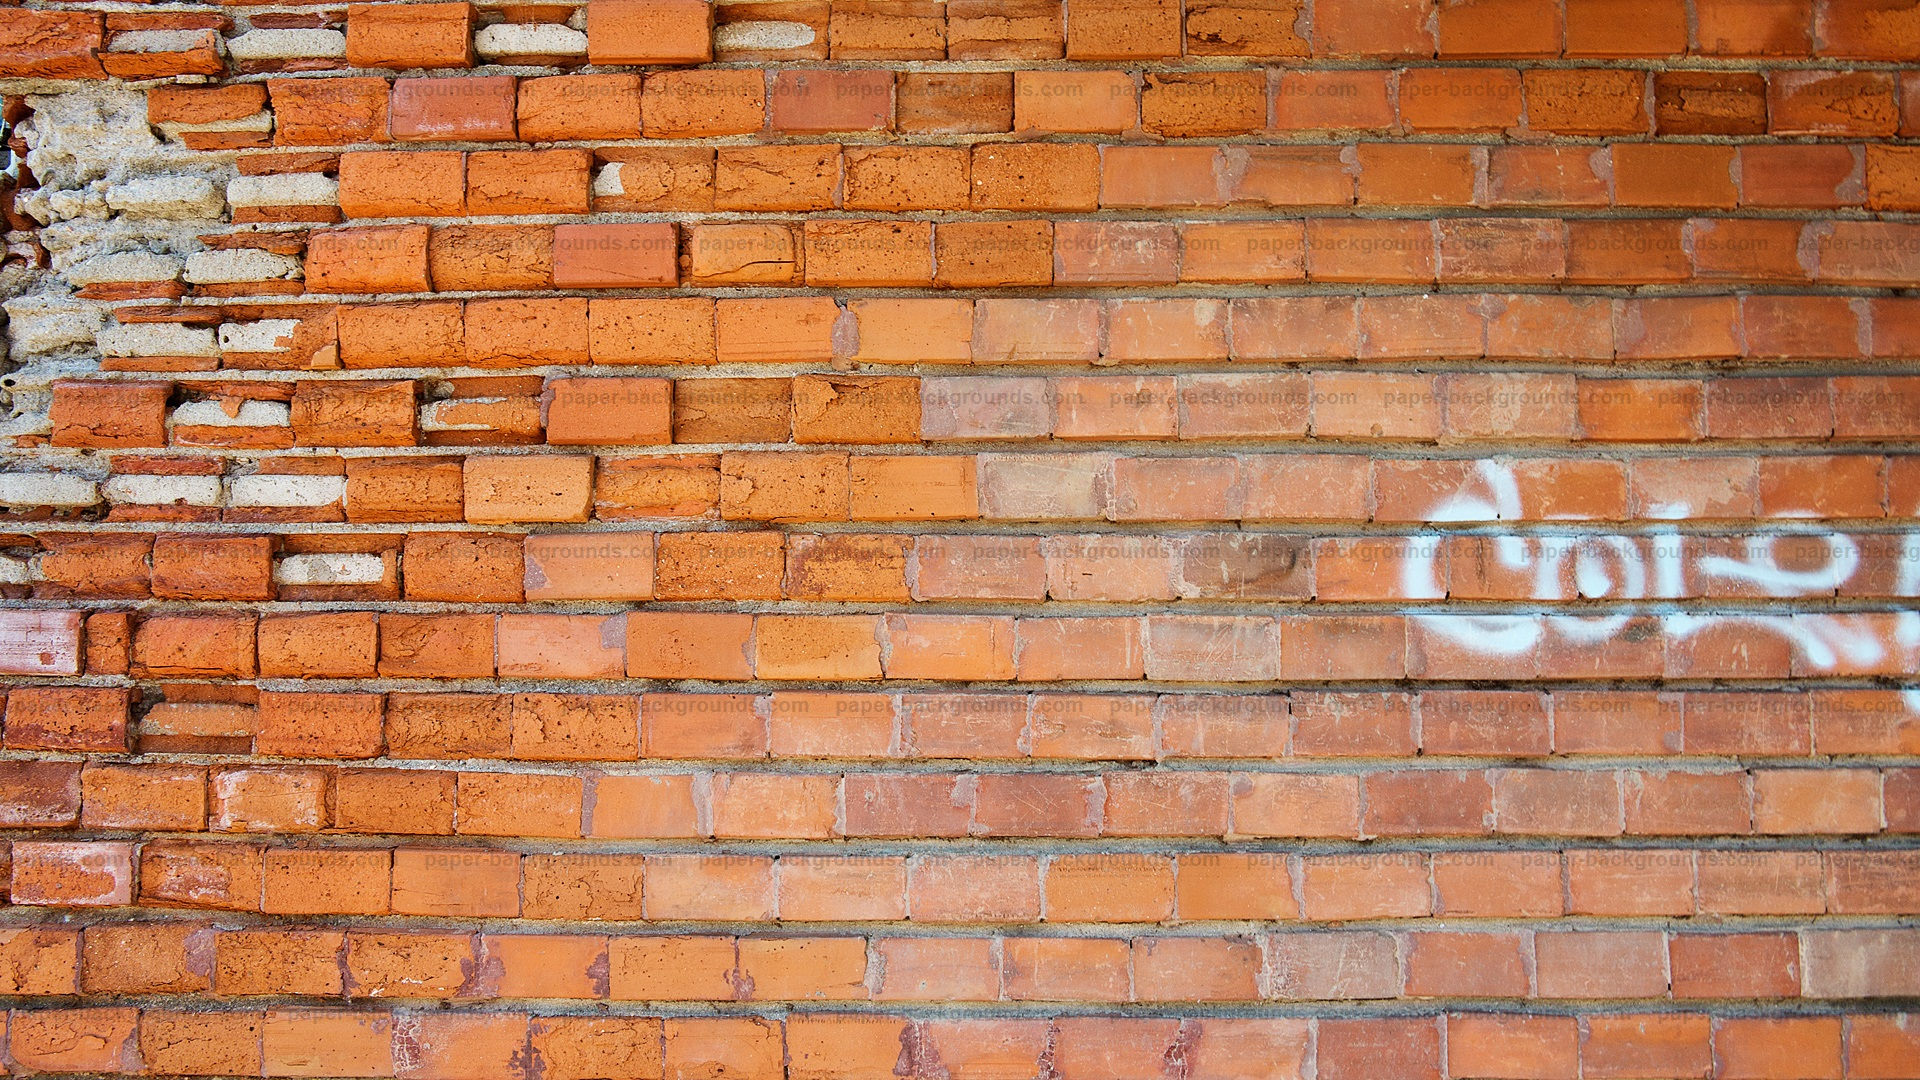 Brick background wallpaper 165278 for Wall to wall wallpaper